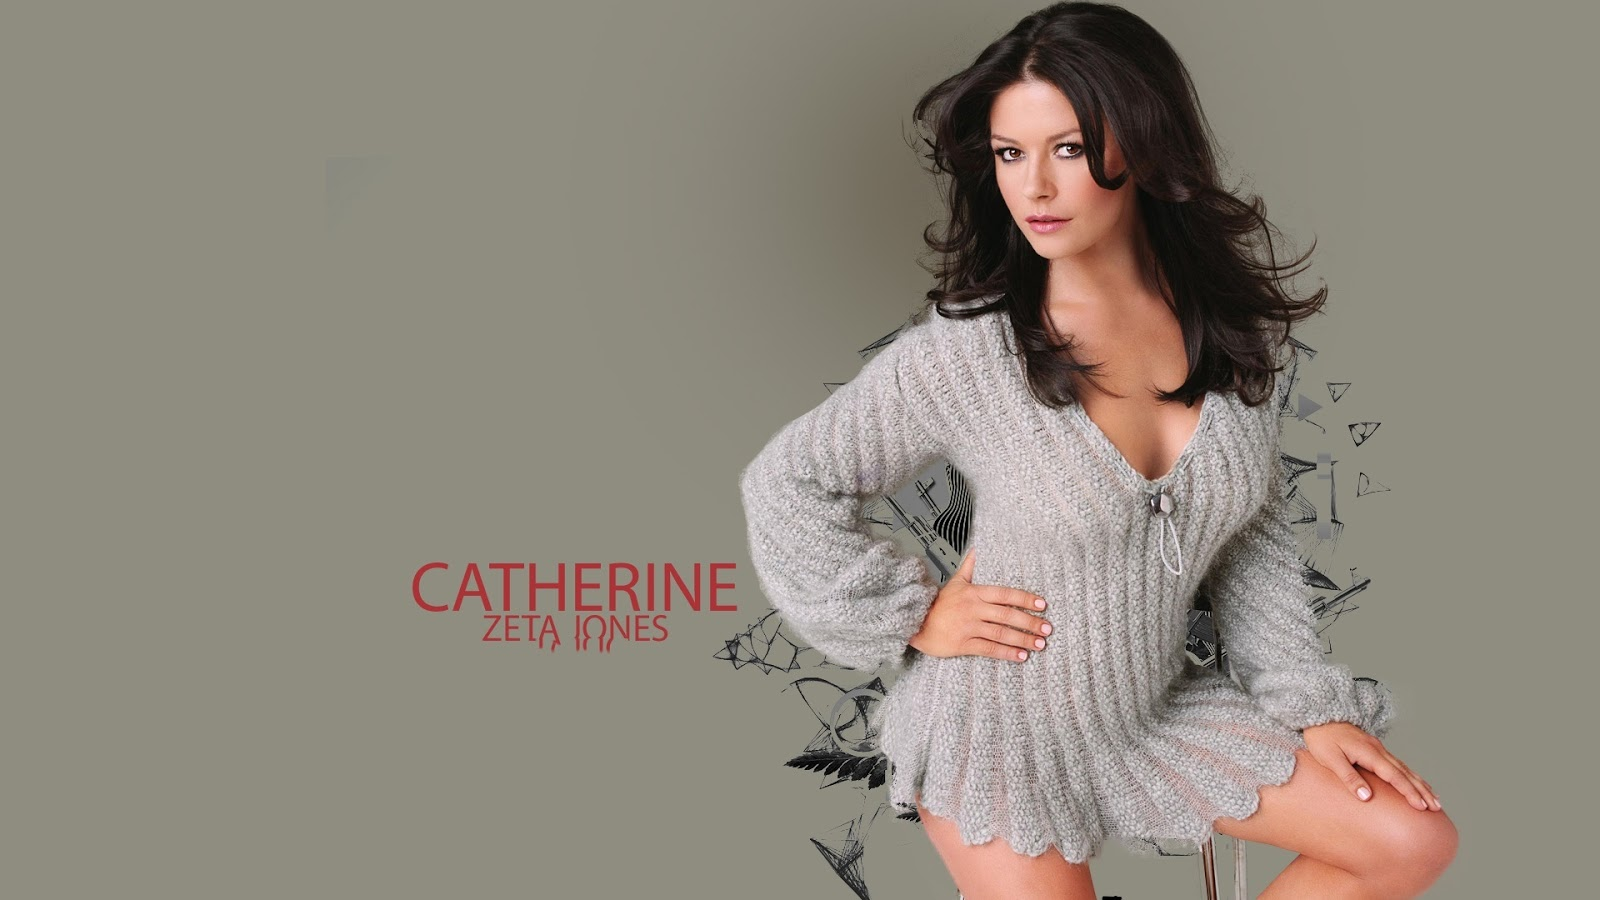 Catherina Zeta Jones